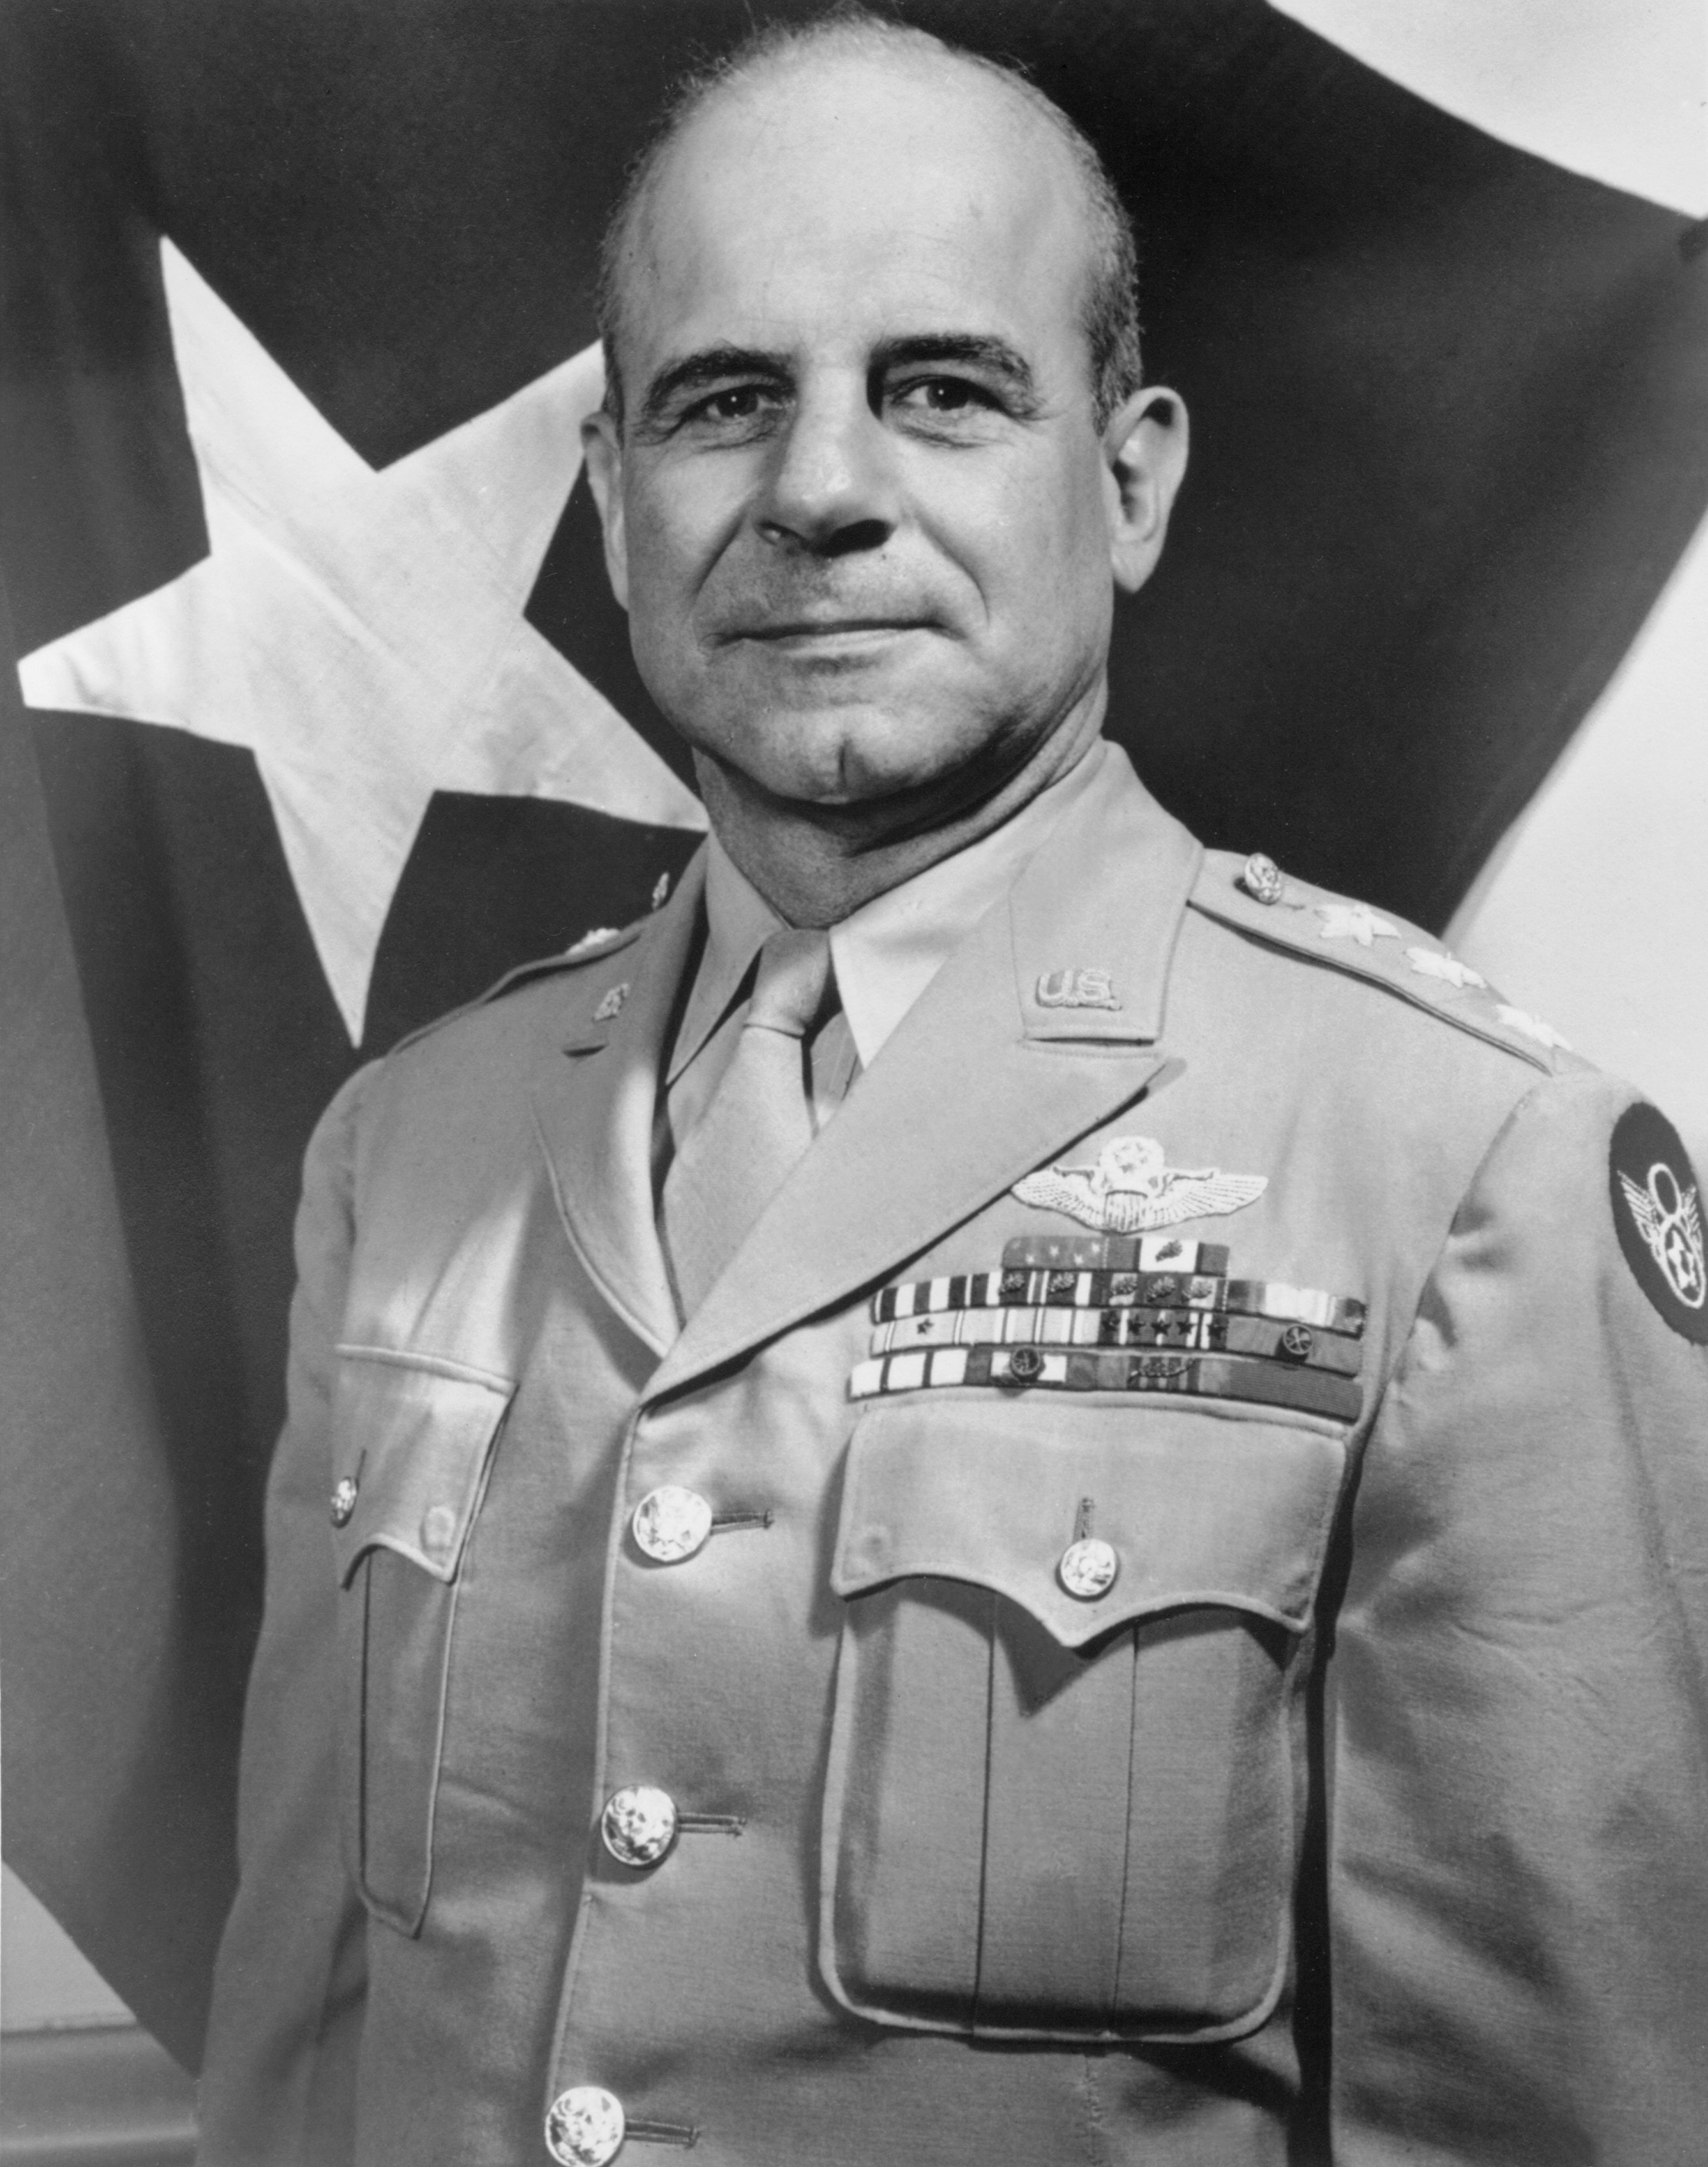 an analysis of a book on jimmy doolittle a famous wwii pilot Though general henry h hap arnold, the army air corps chief of staff, wanted doolittle to hang back and act as his chief aide, doolittle made a run around the army air corps staff and got the spot to lead the raid james h doolittle (photo: wikipedia) doolittle survived the tokyo raid and escaping china ahead of japanese forces.